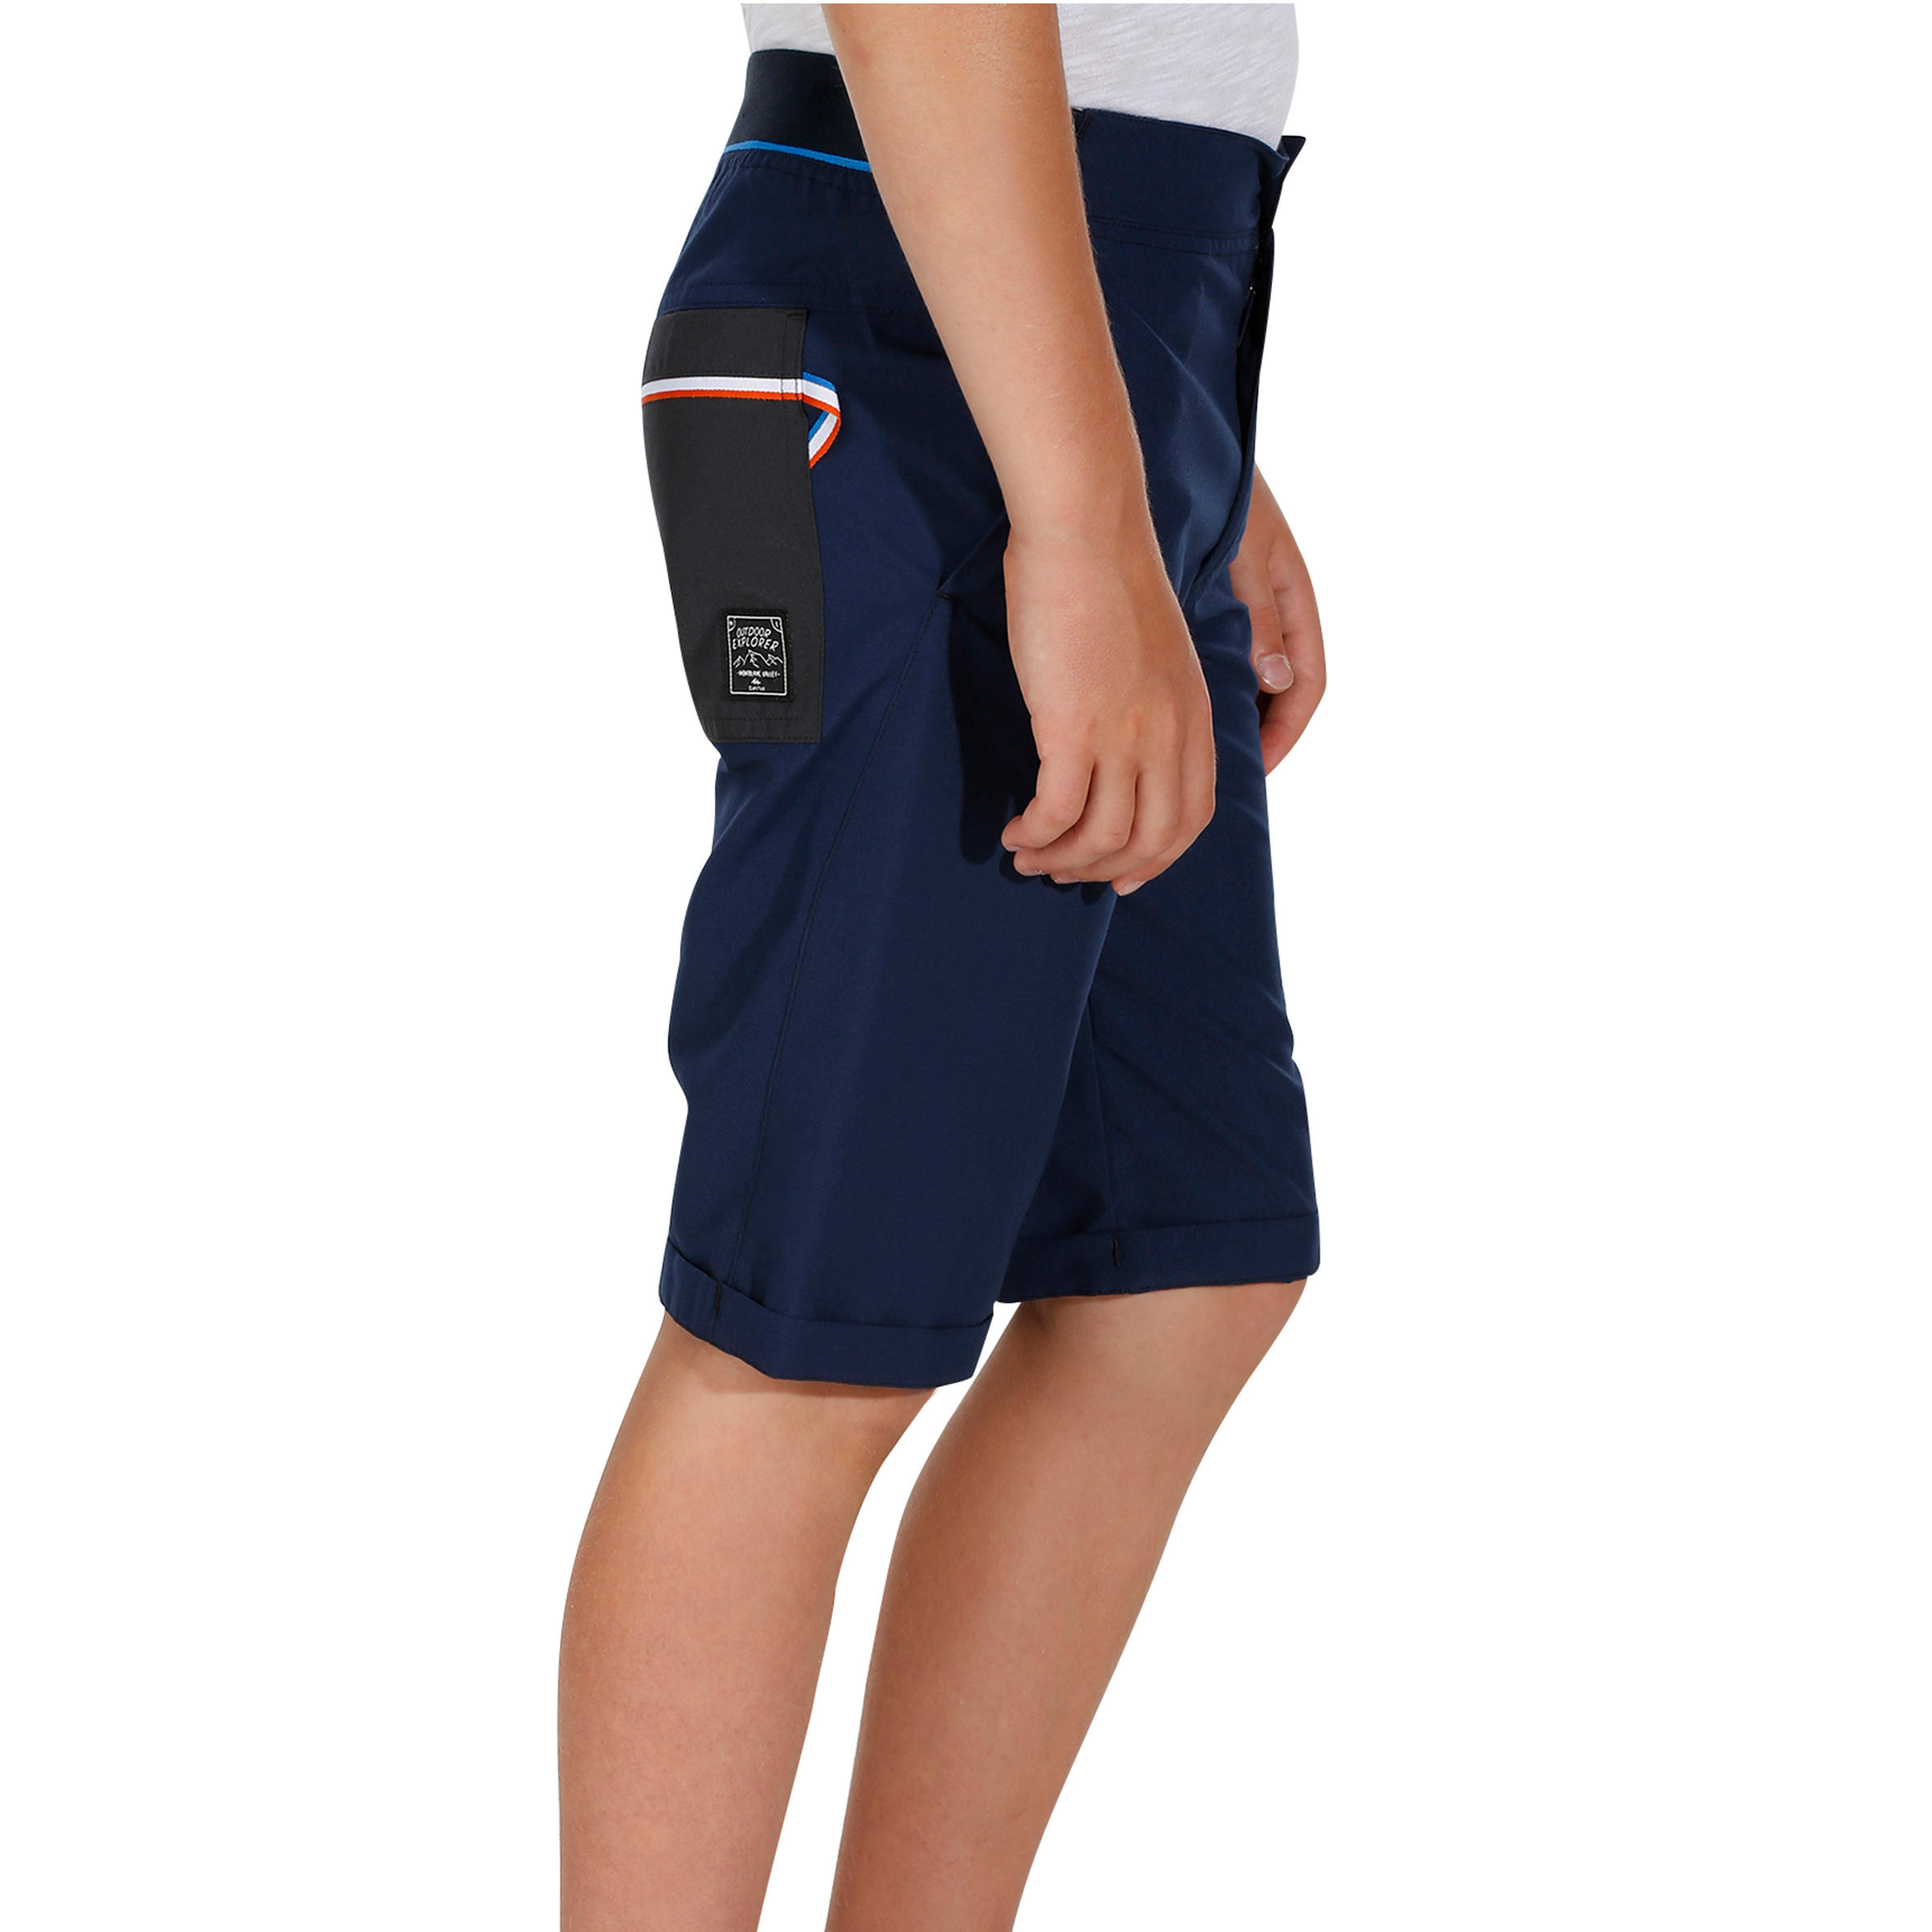 Kid's Hiking Shorts Hike 100 - Navy Blue